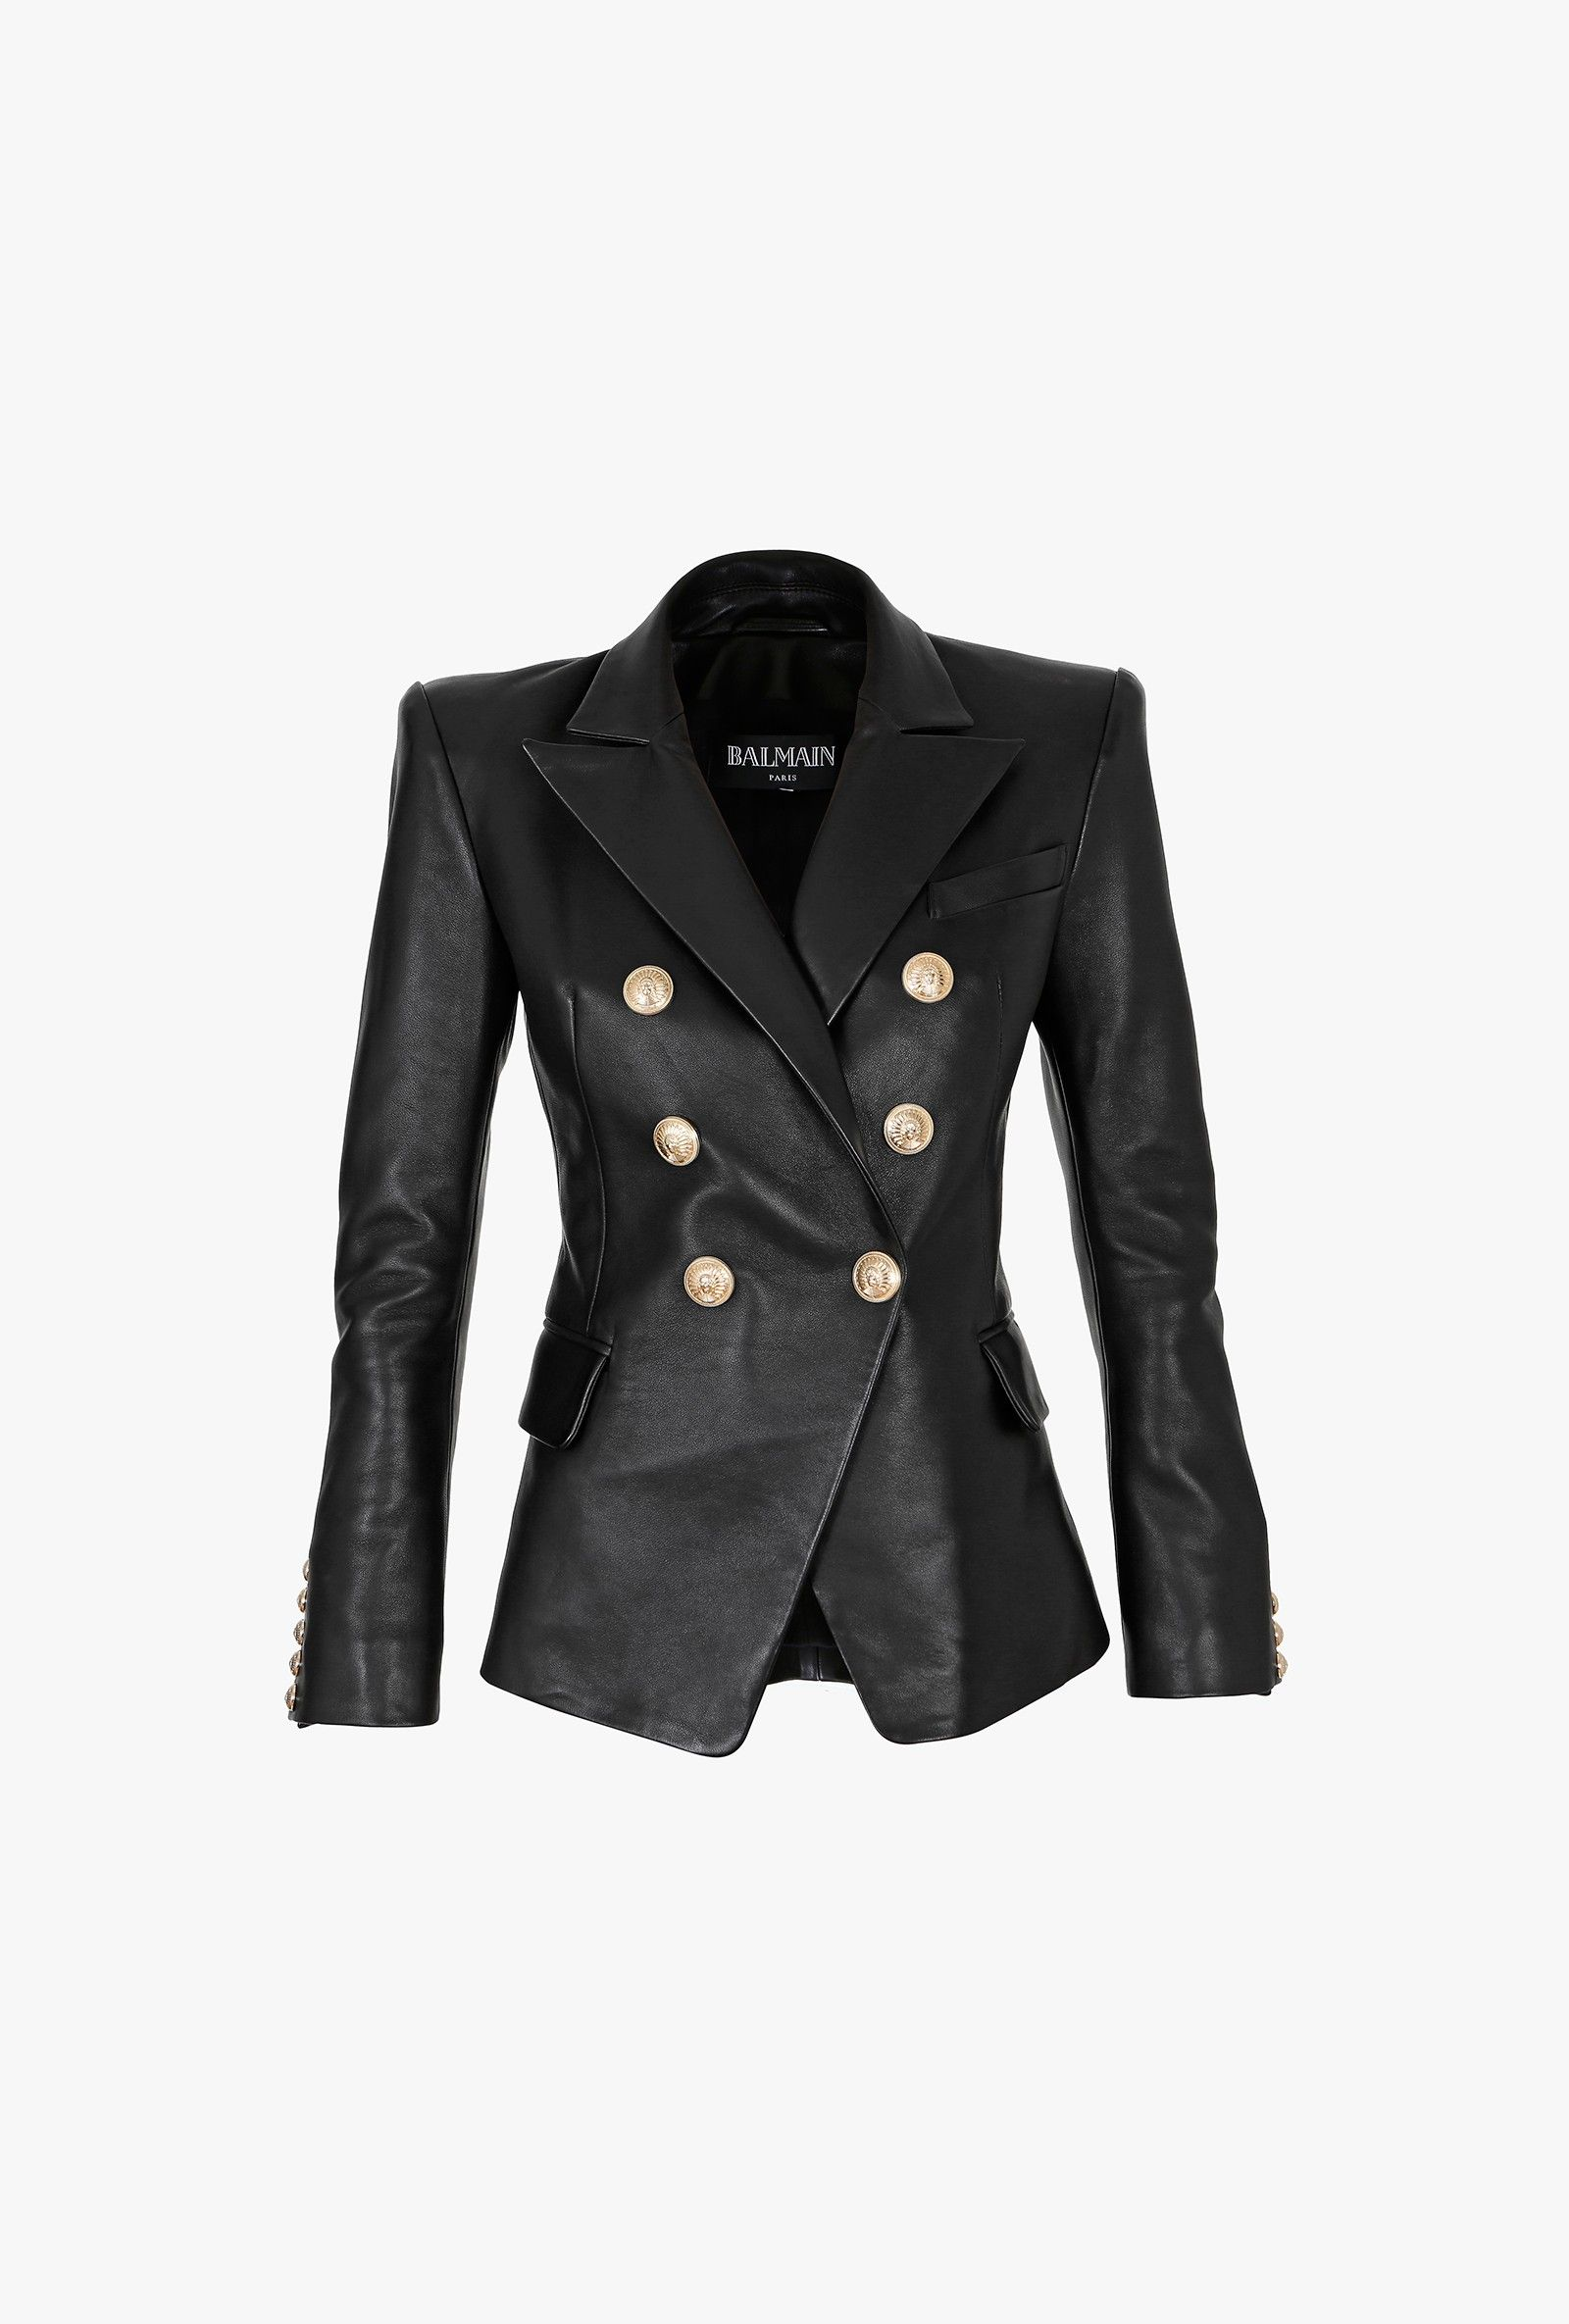 2b9ac720b2 Balmain, Resort 2015, Leather Blazers Online Store...OMG, absolutely  GORGEOUS!!!! Nothing to do with wedding dress, I just saw & had to pin.